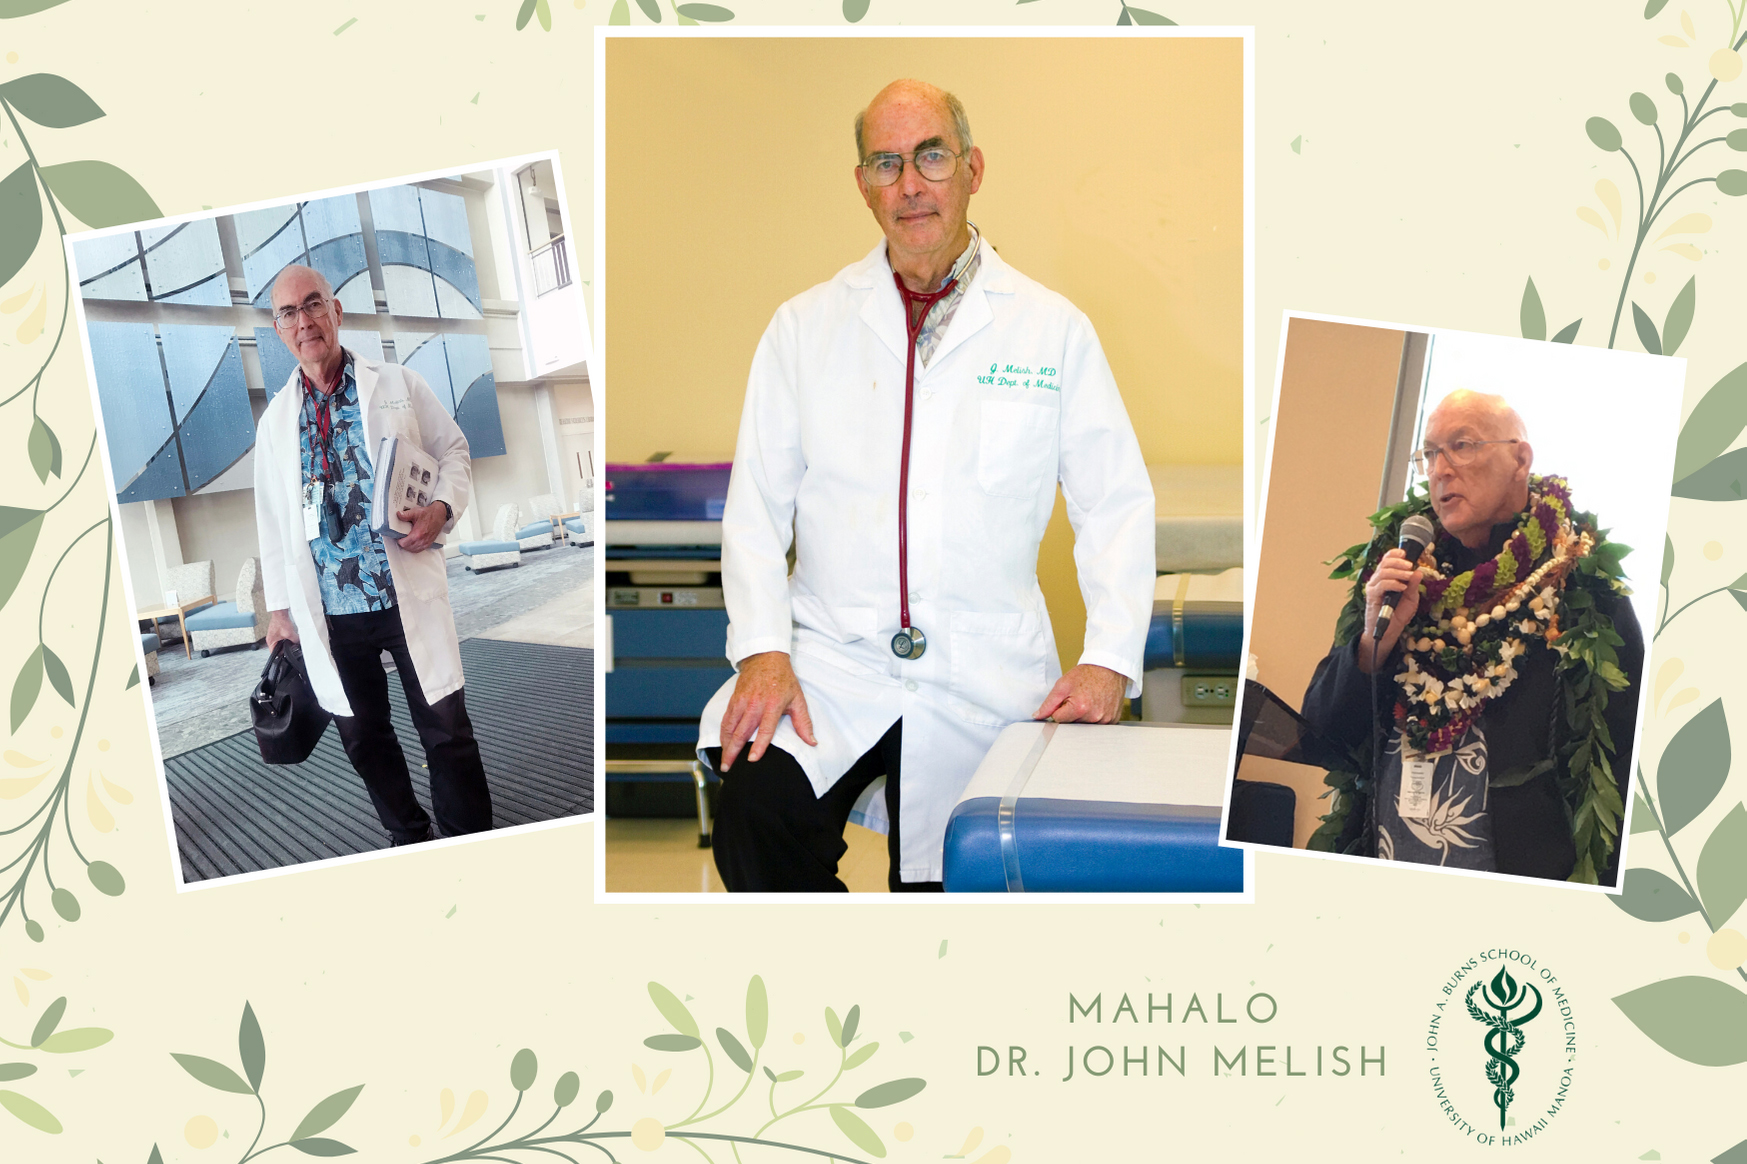 collage of photos of Dr. John Melish